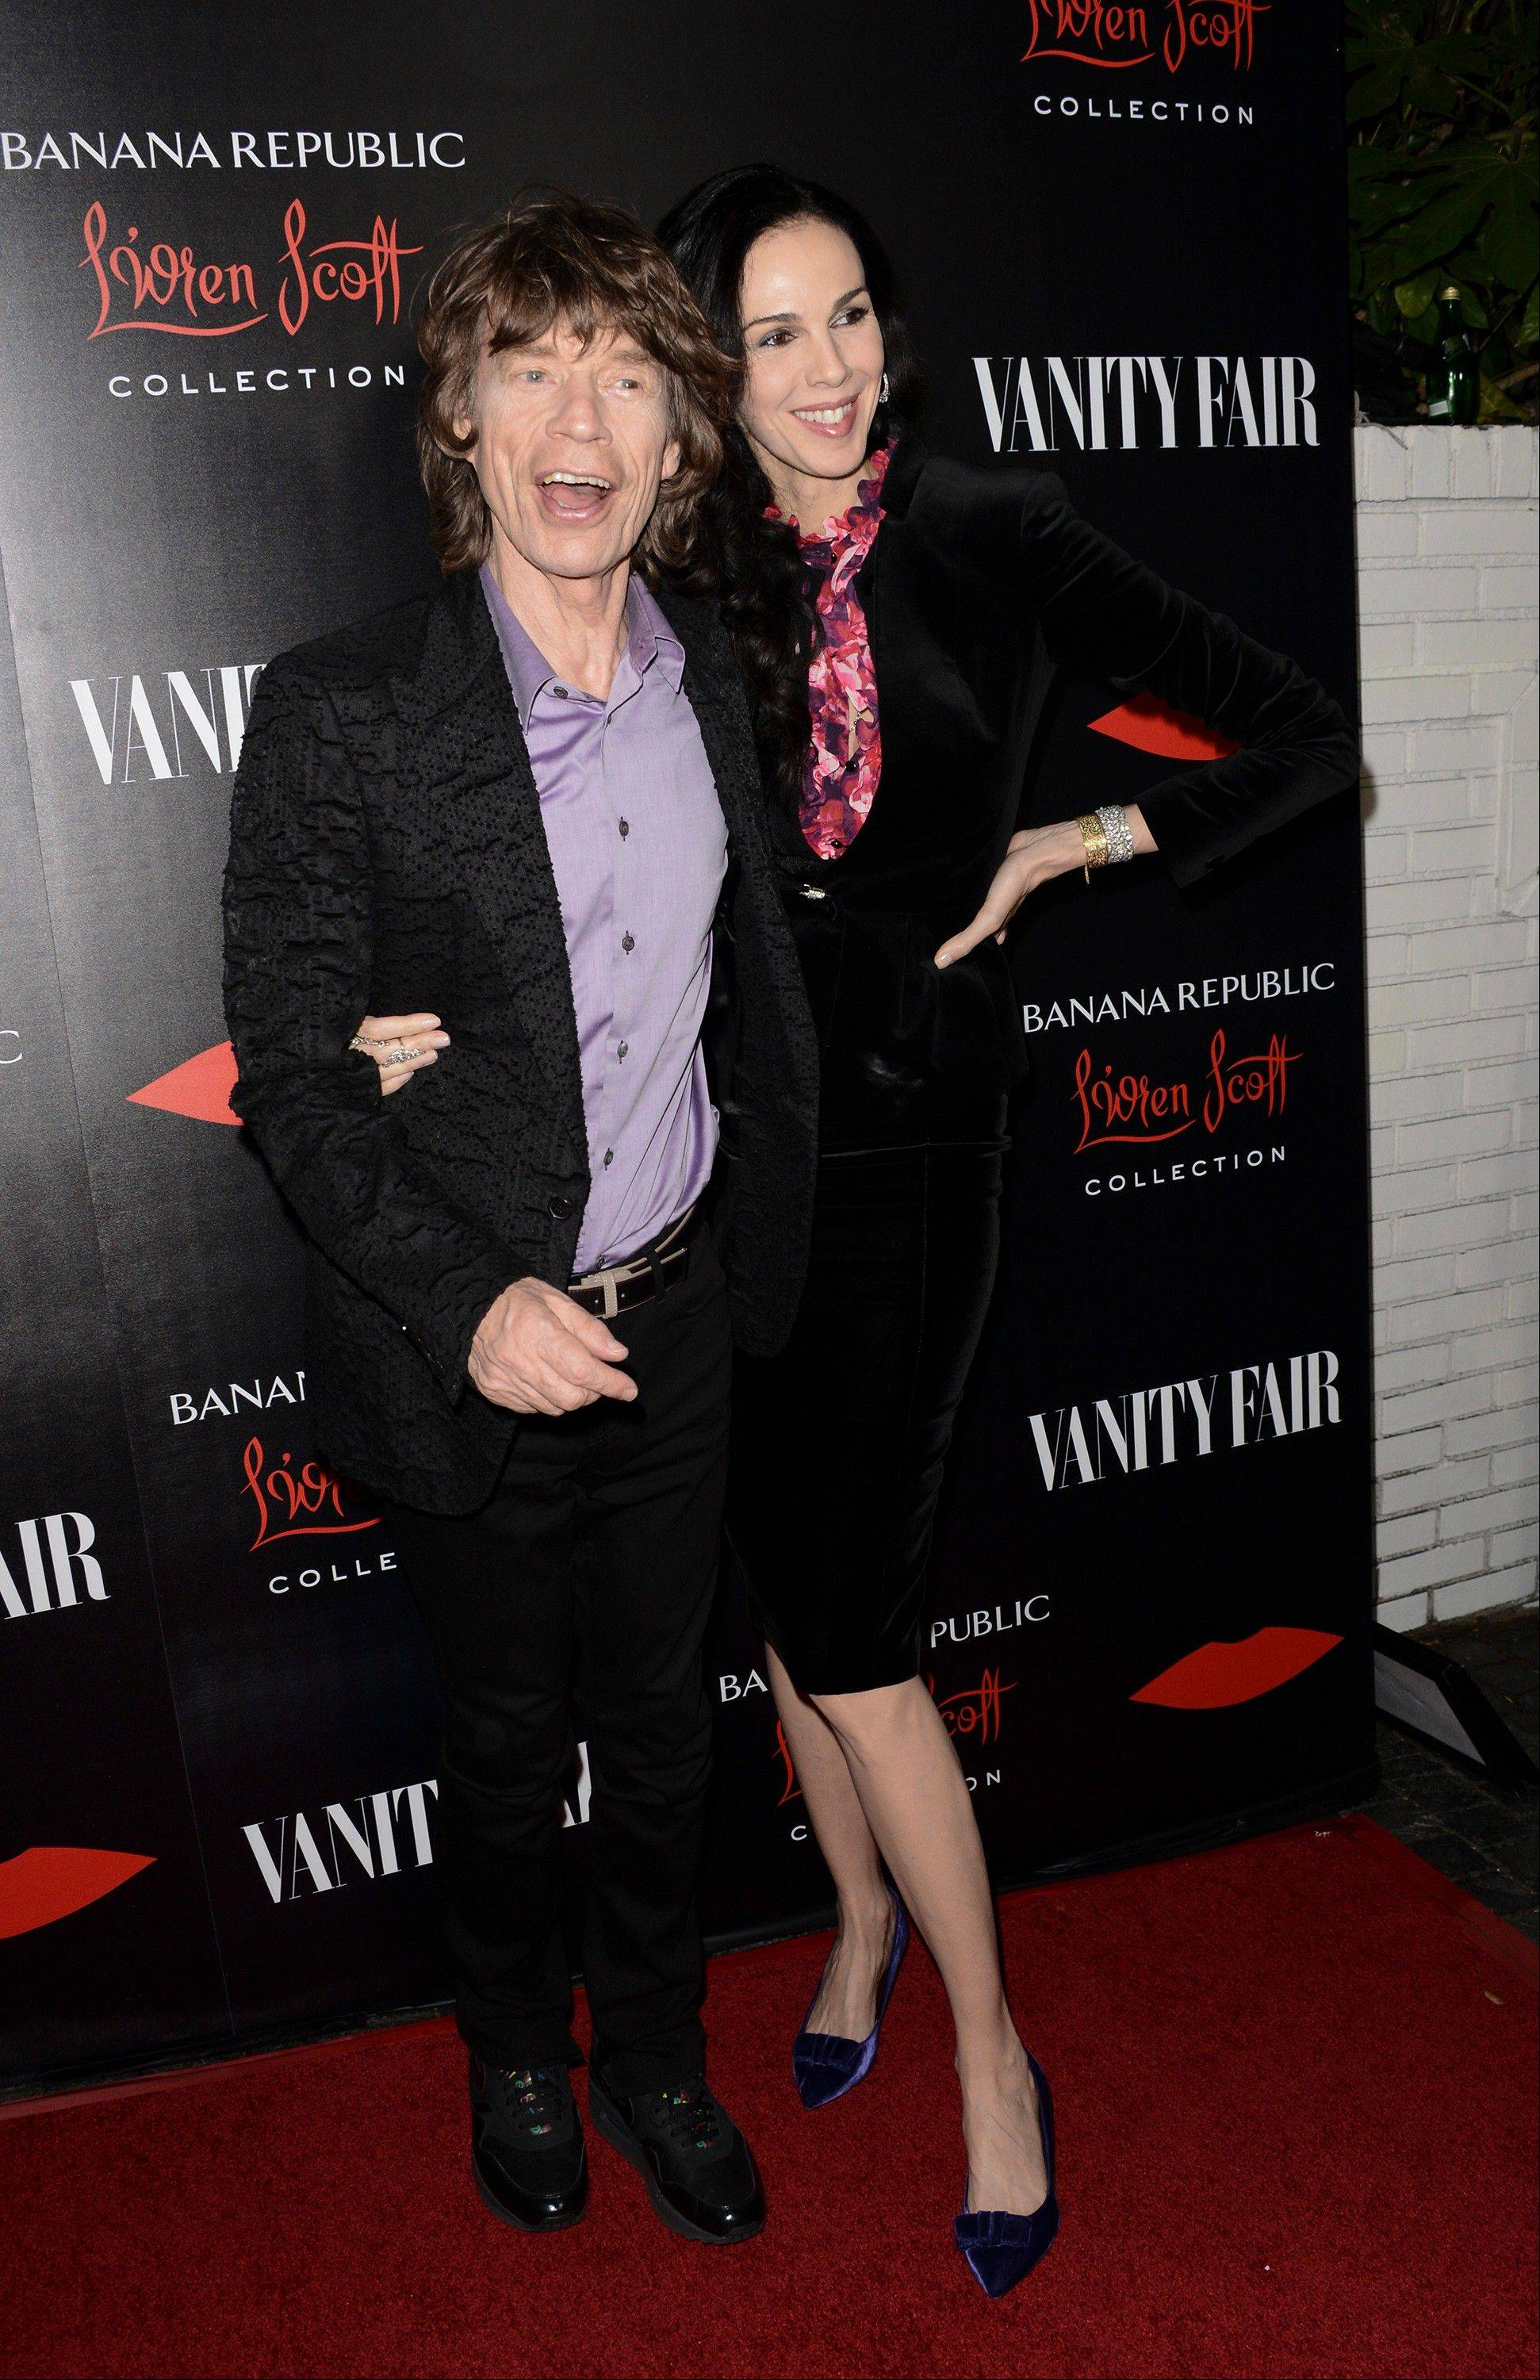 Mick Jagger and fashion designer L�Wren Scott arrive at the Banana Republic L�Wren Scott Collection launch party Tuesday at the Chateau Marmont in West Hollywood, Calif. L�wren Scott, who launched the limited-edition Banana Republic L�Wren Scott Collection Wednesday, says it will wrap her signature flattering construction and extraordinary fabrics into a package that will cost less than $200.